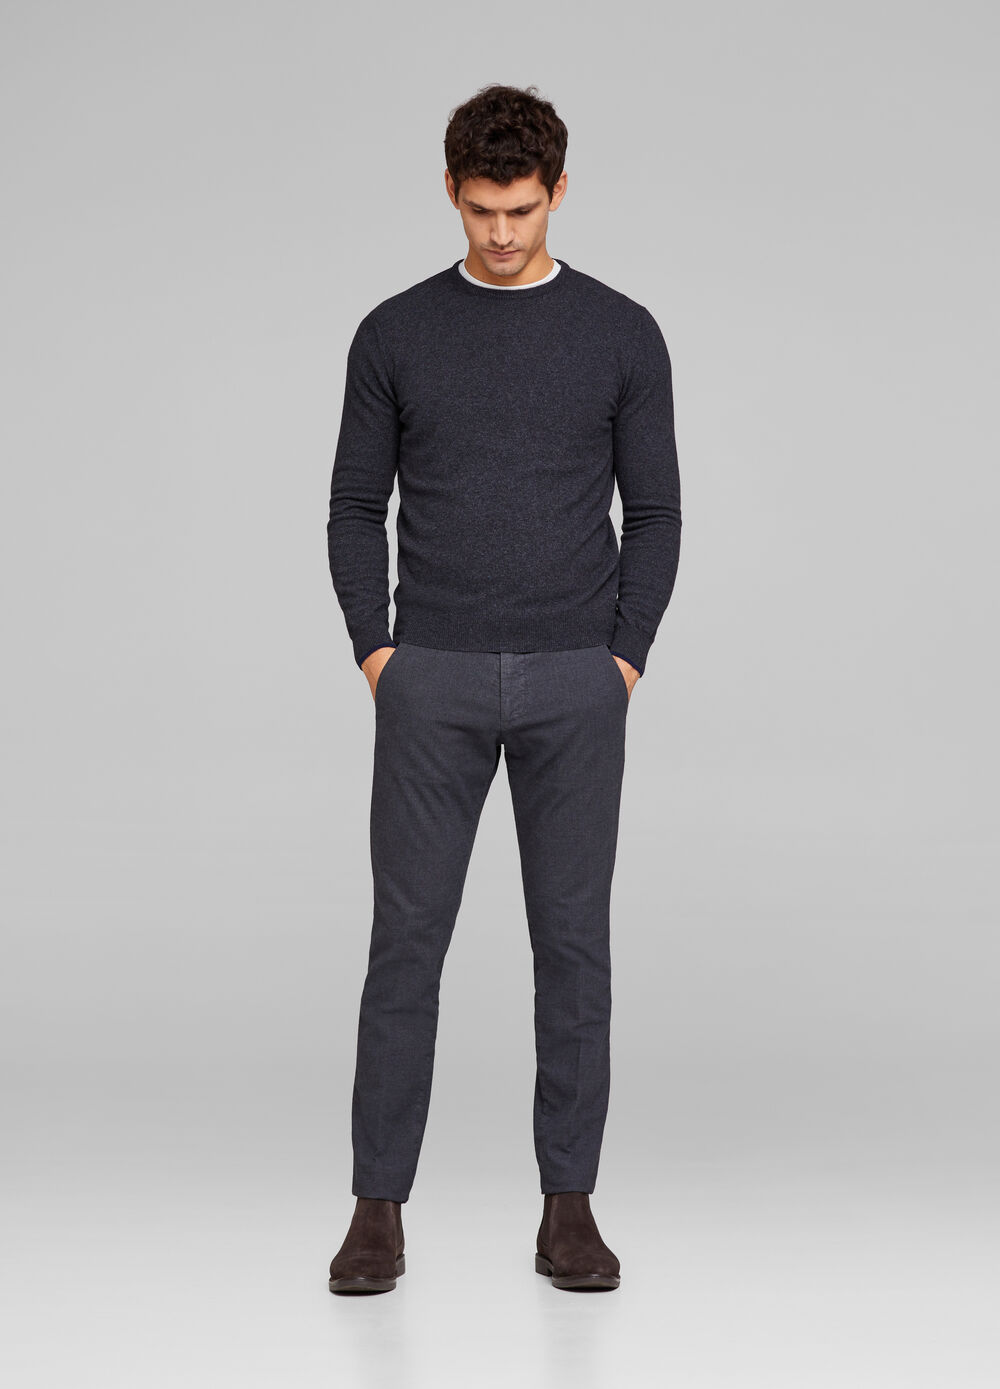 Rumford viscose and cotton trousers